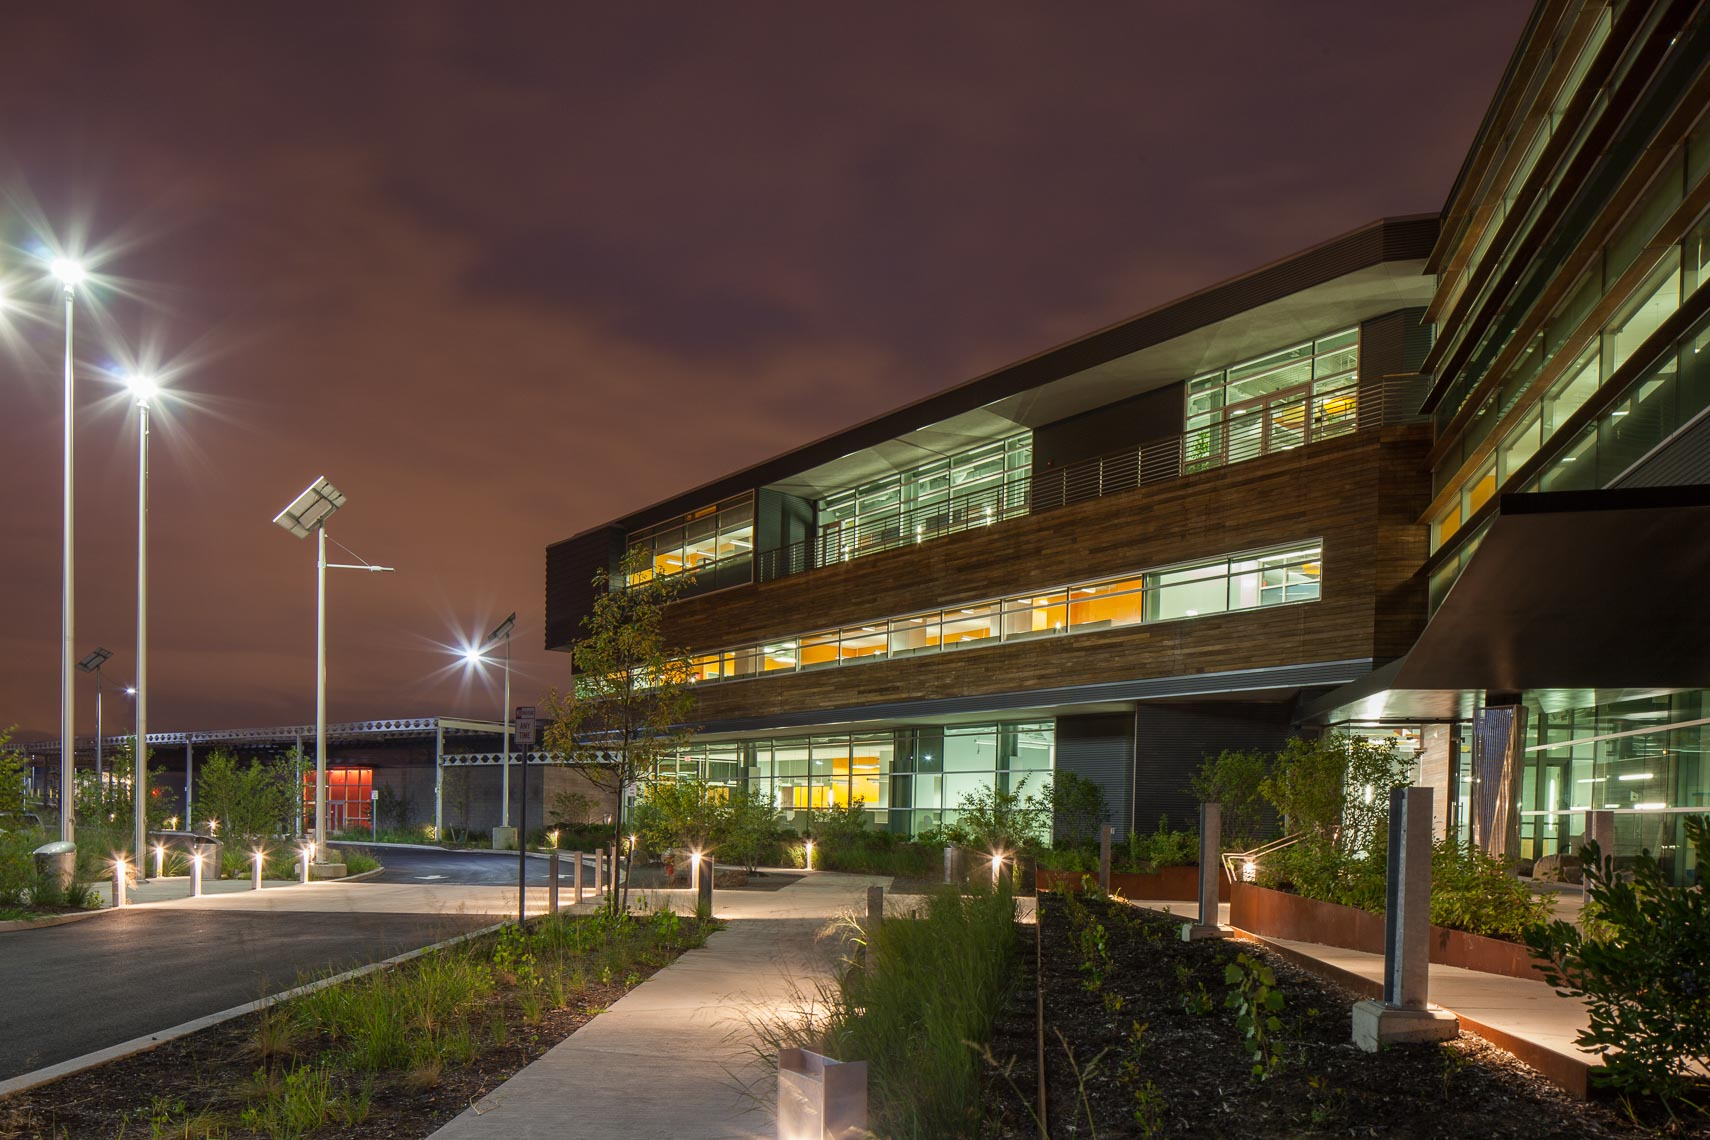 Front elevation of large office building at night